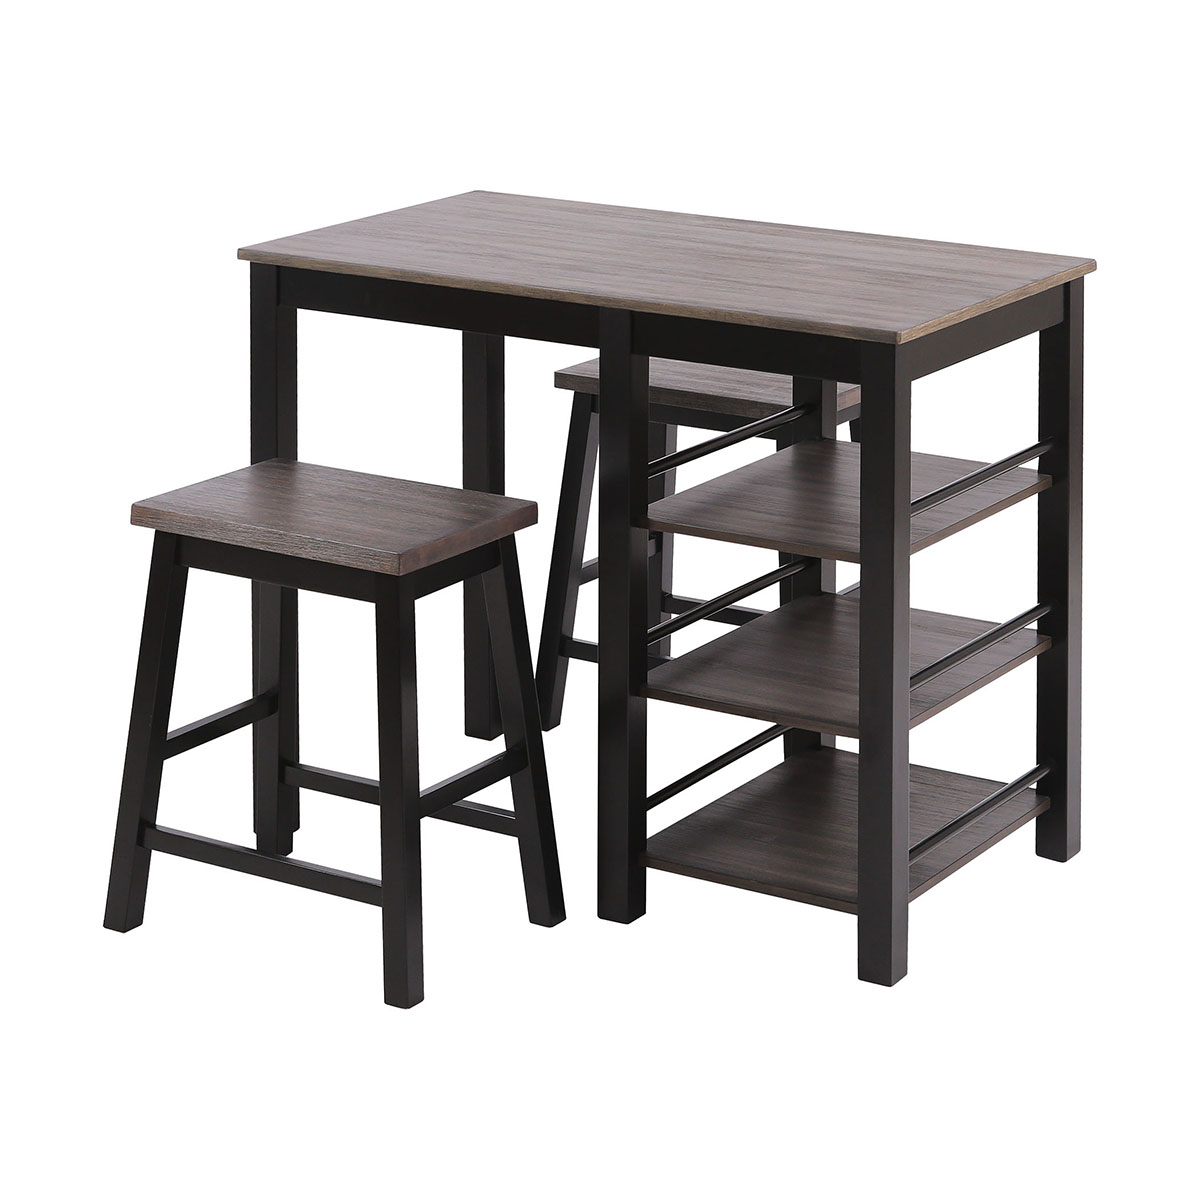 McConnell Dining Set (Includes Table and 2 Stools) | Stein World